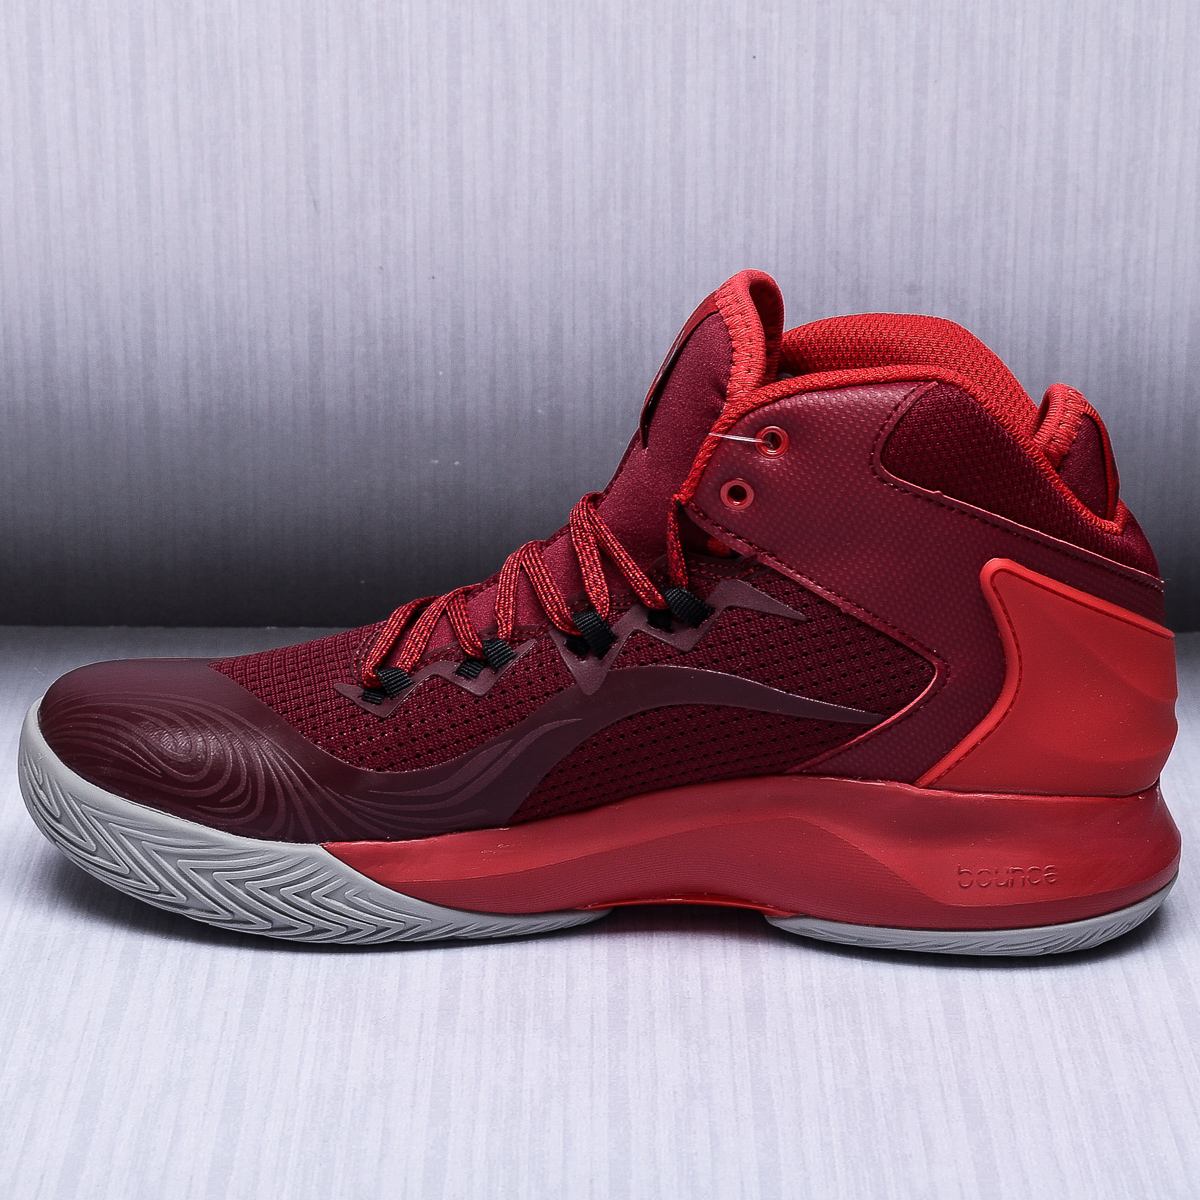 adidas D Rose Dominate IV Basketball Shoes - BASKETBALL ...